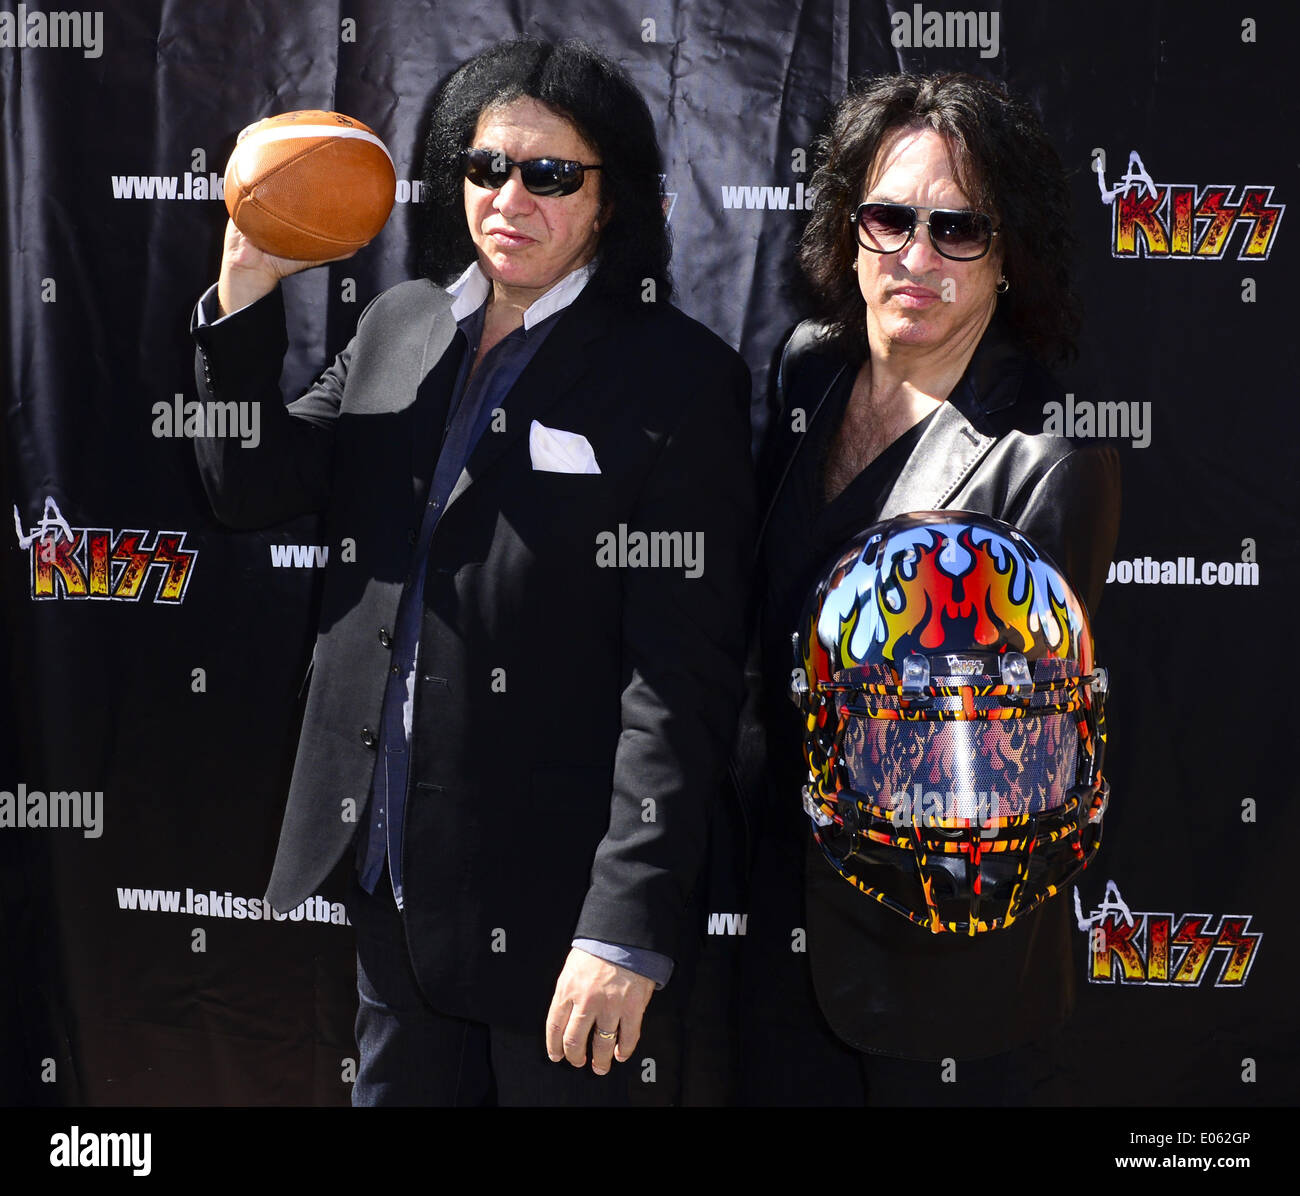 Anaheim, California, USA. 10th Mar, 2014. Kiss band members GENE SIMMONS and PAUL STANLEY pose with the newly unveiled LA Kiss Arena Football helmet on Monday morning at Honda Center. The newly formed LA Kiss, Arena Football's newest team, held their first media event at The Honda Center on Monday morning, March 10, 2014, in Anaheim. The LA Kiss, named after famed rock and roll band, Kiss, boasts two members of the band as owners, Gene Simmons and Paul Stanley. The co-owners announced a free Kiss concert for all season ticket holders as part of a $99 dollar package. (Credit Image: © David - Stock Image